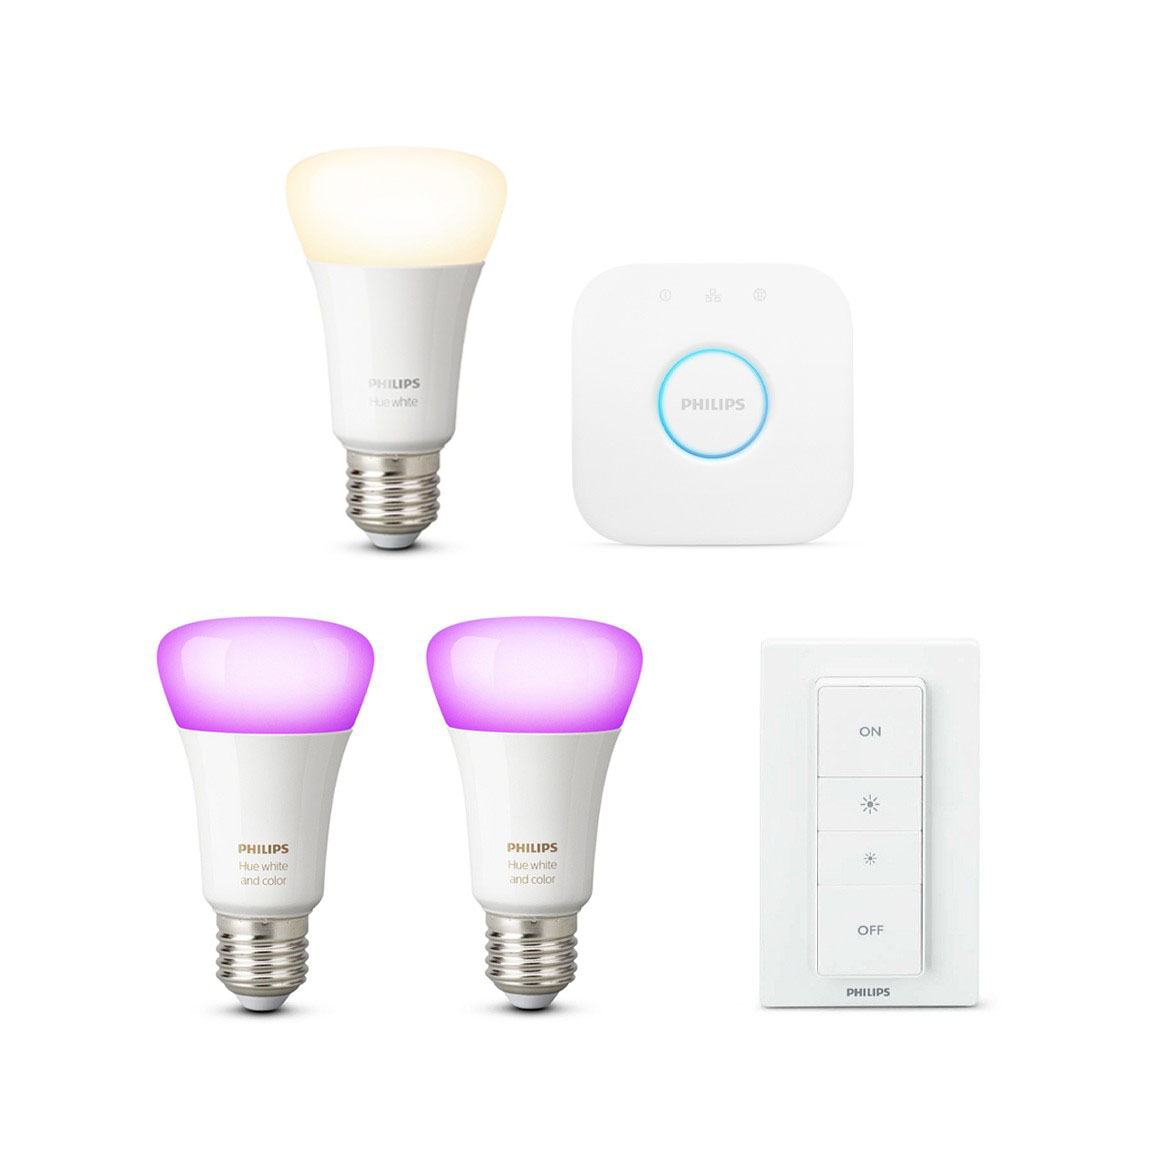 Philips Hue White & Color Ambiance E27 Starter Kit + gratis Lampe